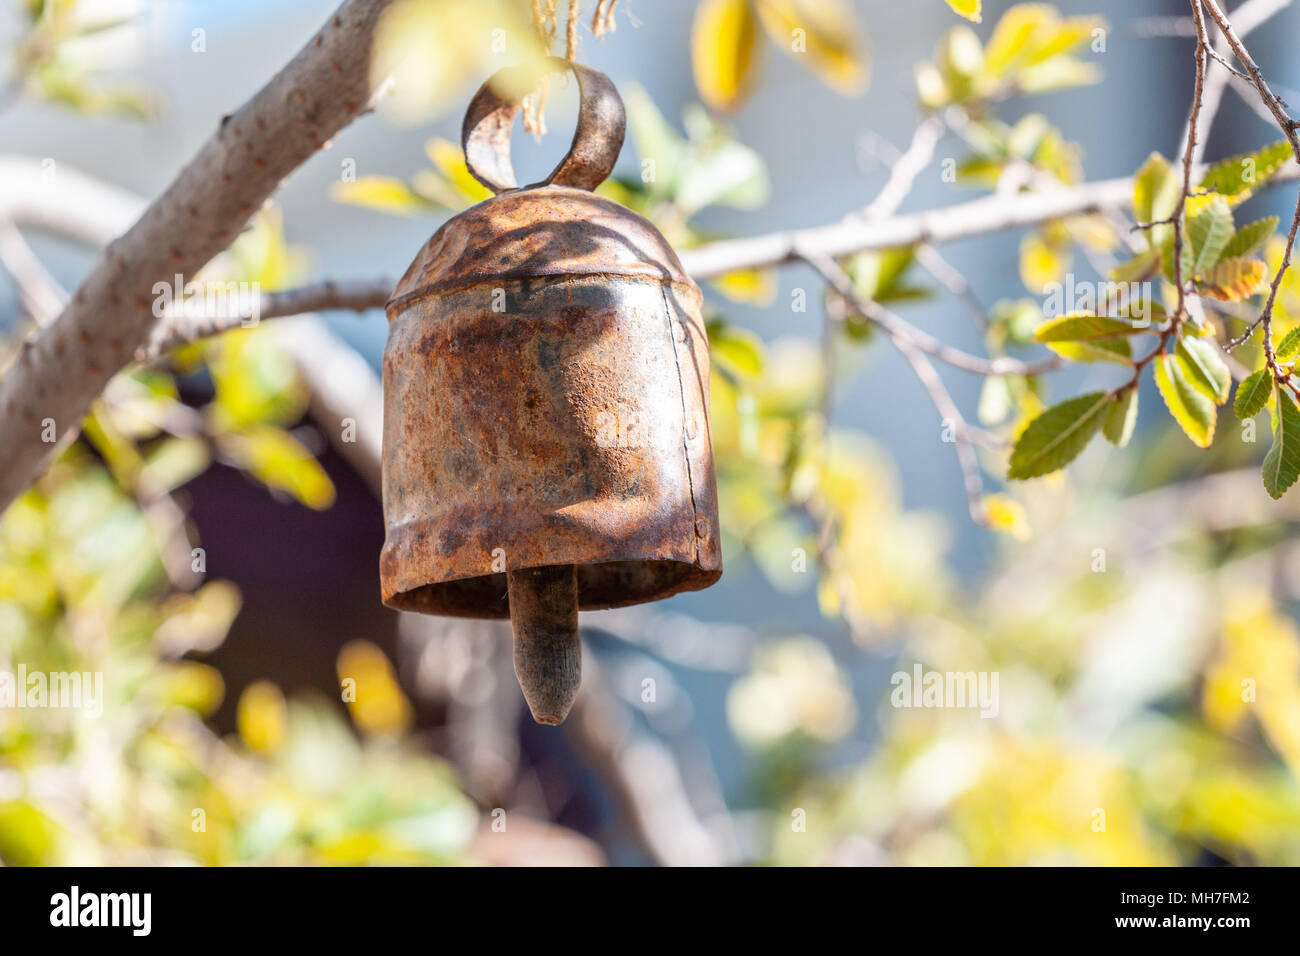 Metal rusty bell hanging from tree branch on blurred background - spirituality concept - Stock Image